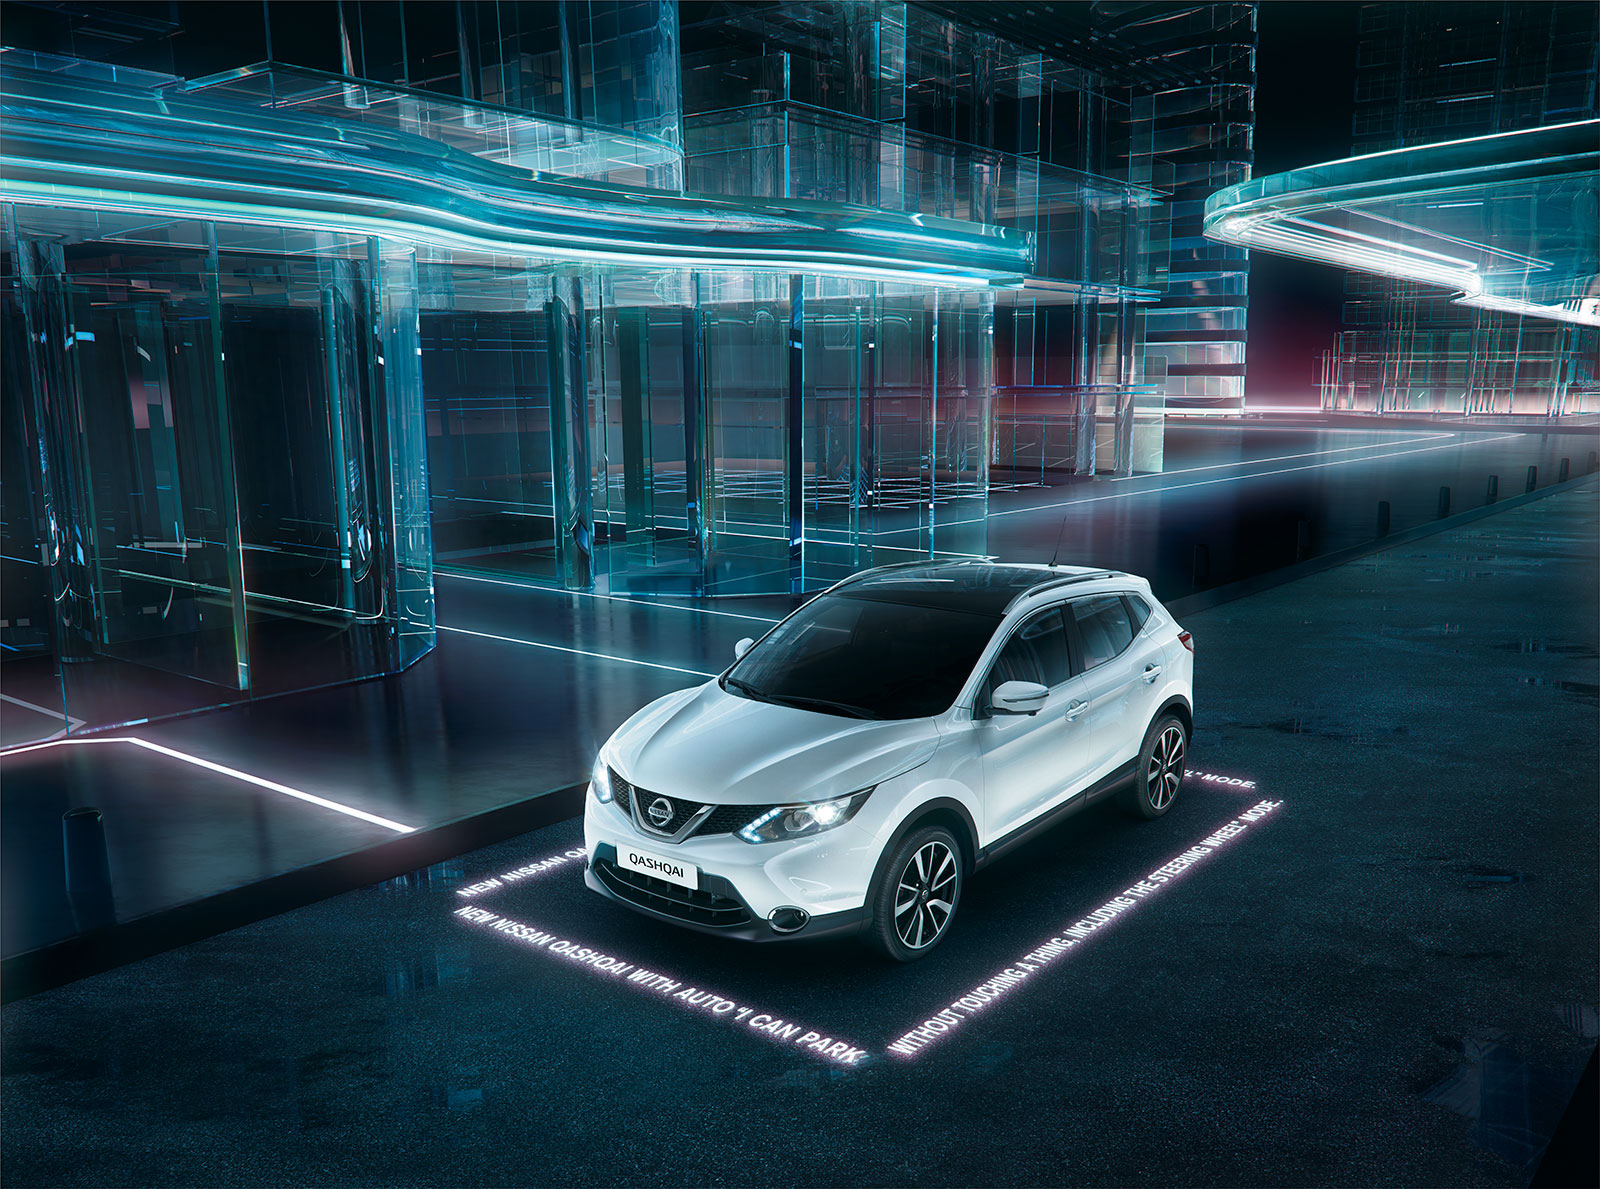 TBWP_Nissan_Qashqai_City_PARKING_COMP11_CHR-internal.jpg